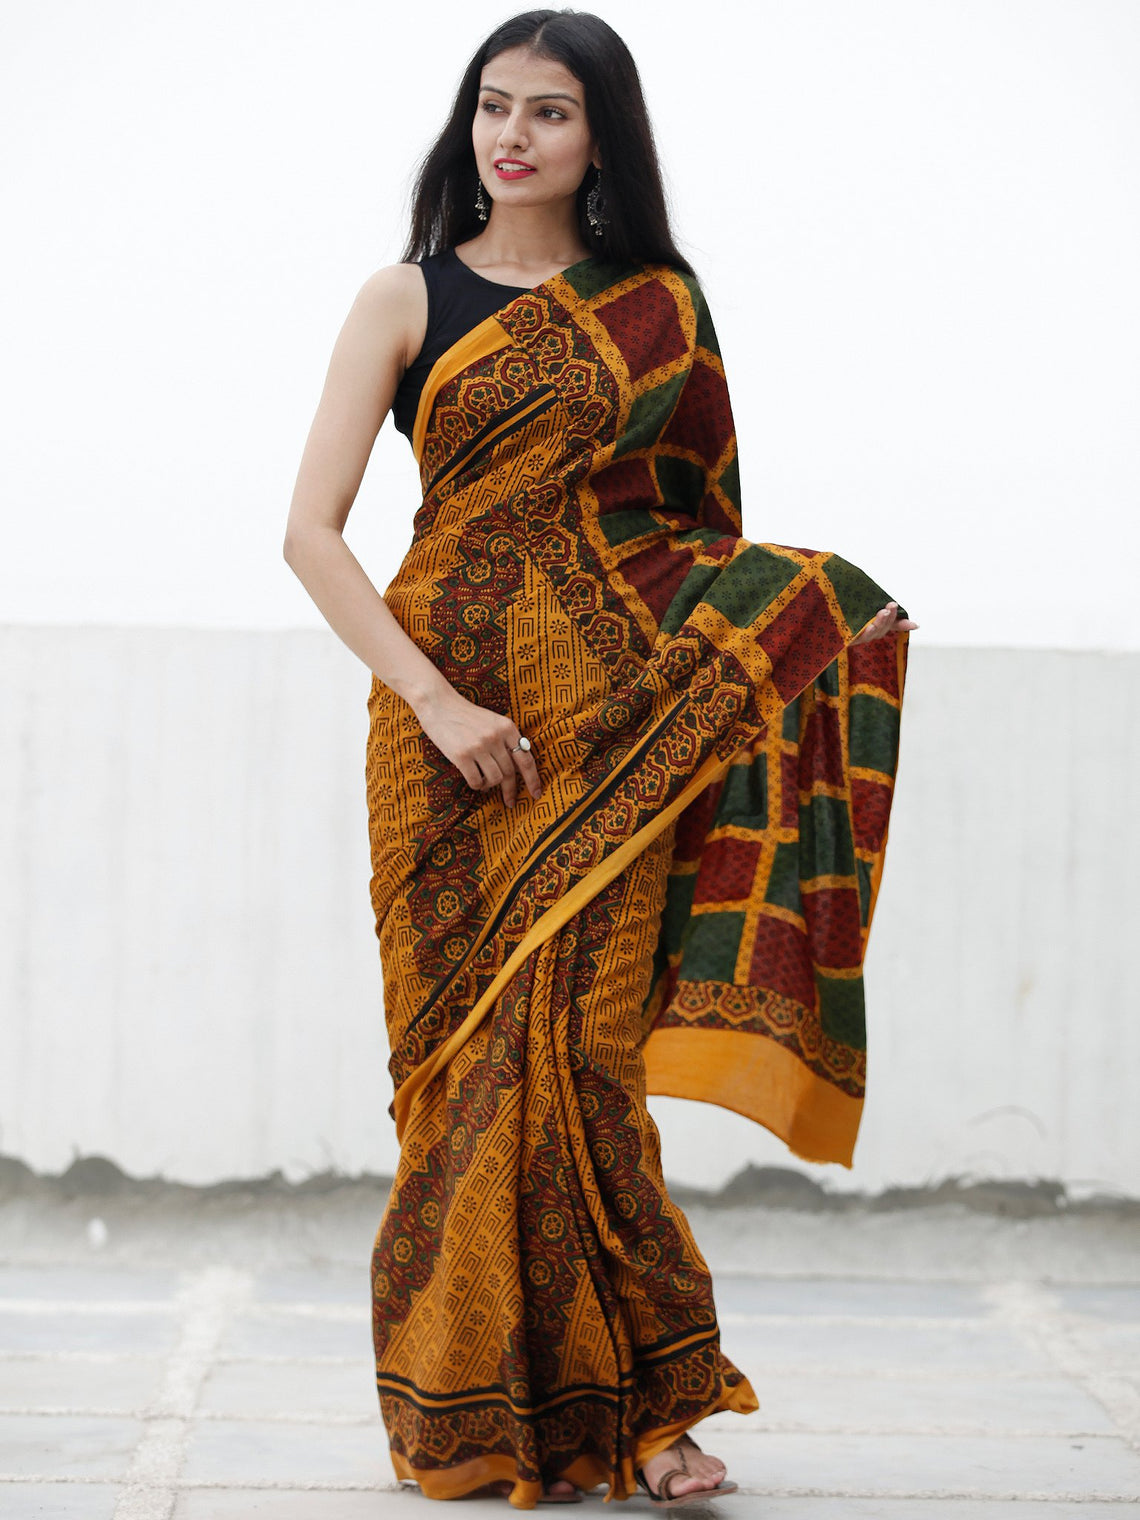 Gold Yellow Green Marooon Black Ajrakh Hand Block Printed Modal Silk Saree in Natural Colors - S031703711